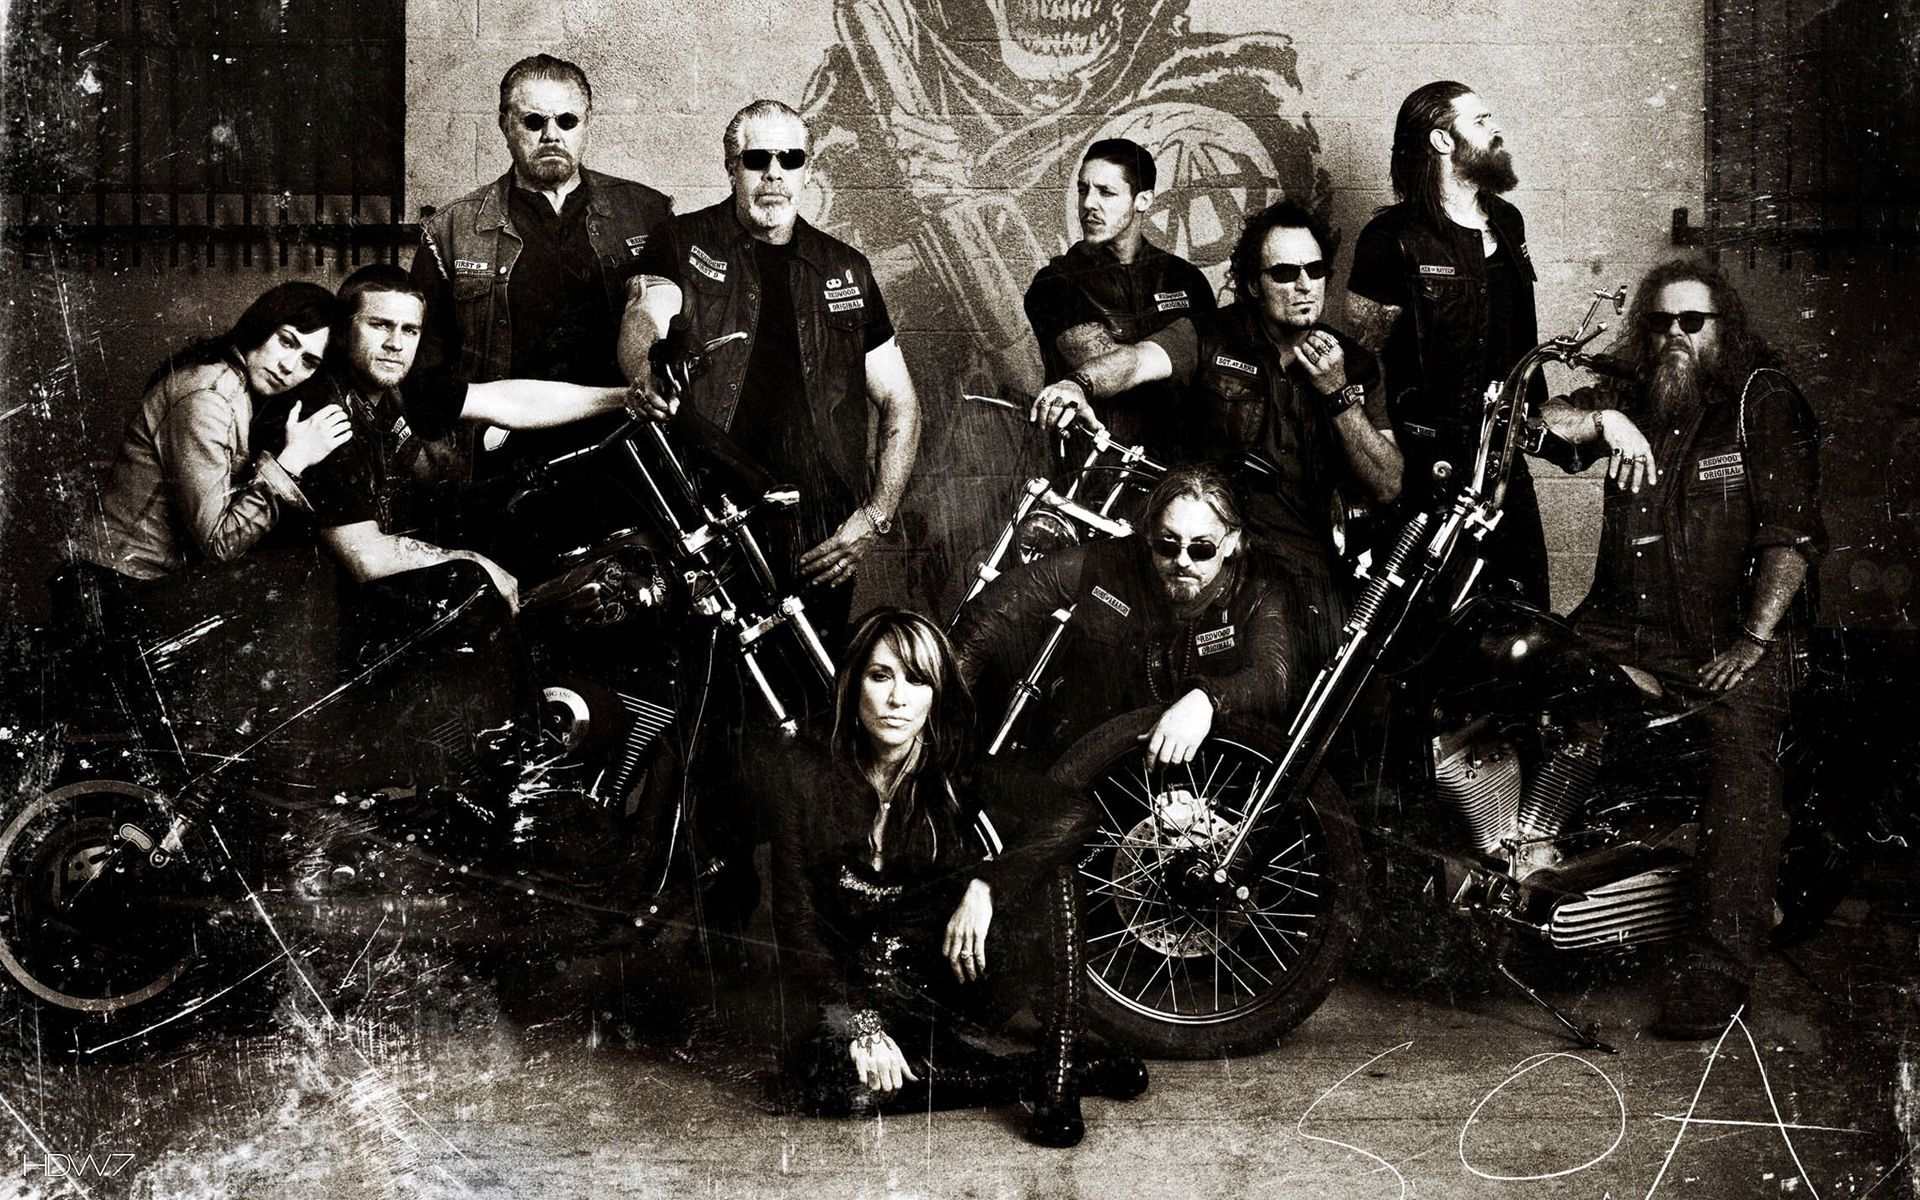 Sons Of Anarchy Wallpapers Top Free Sons Of Anarchy